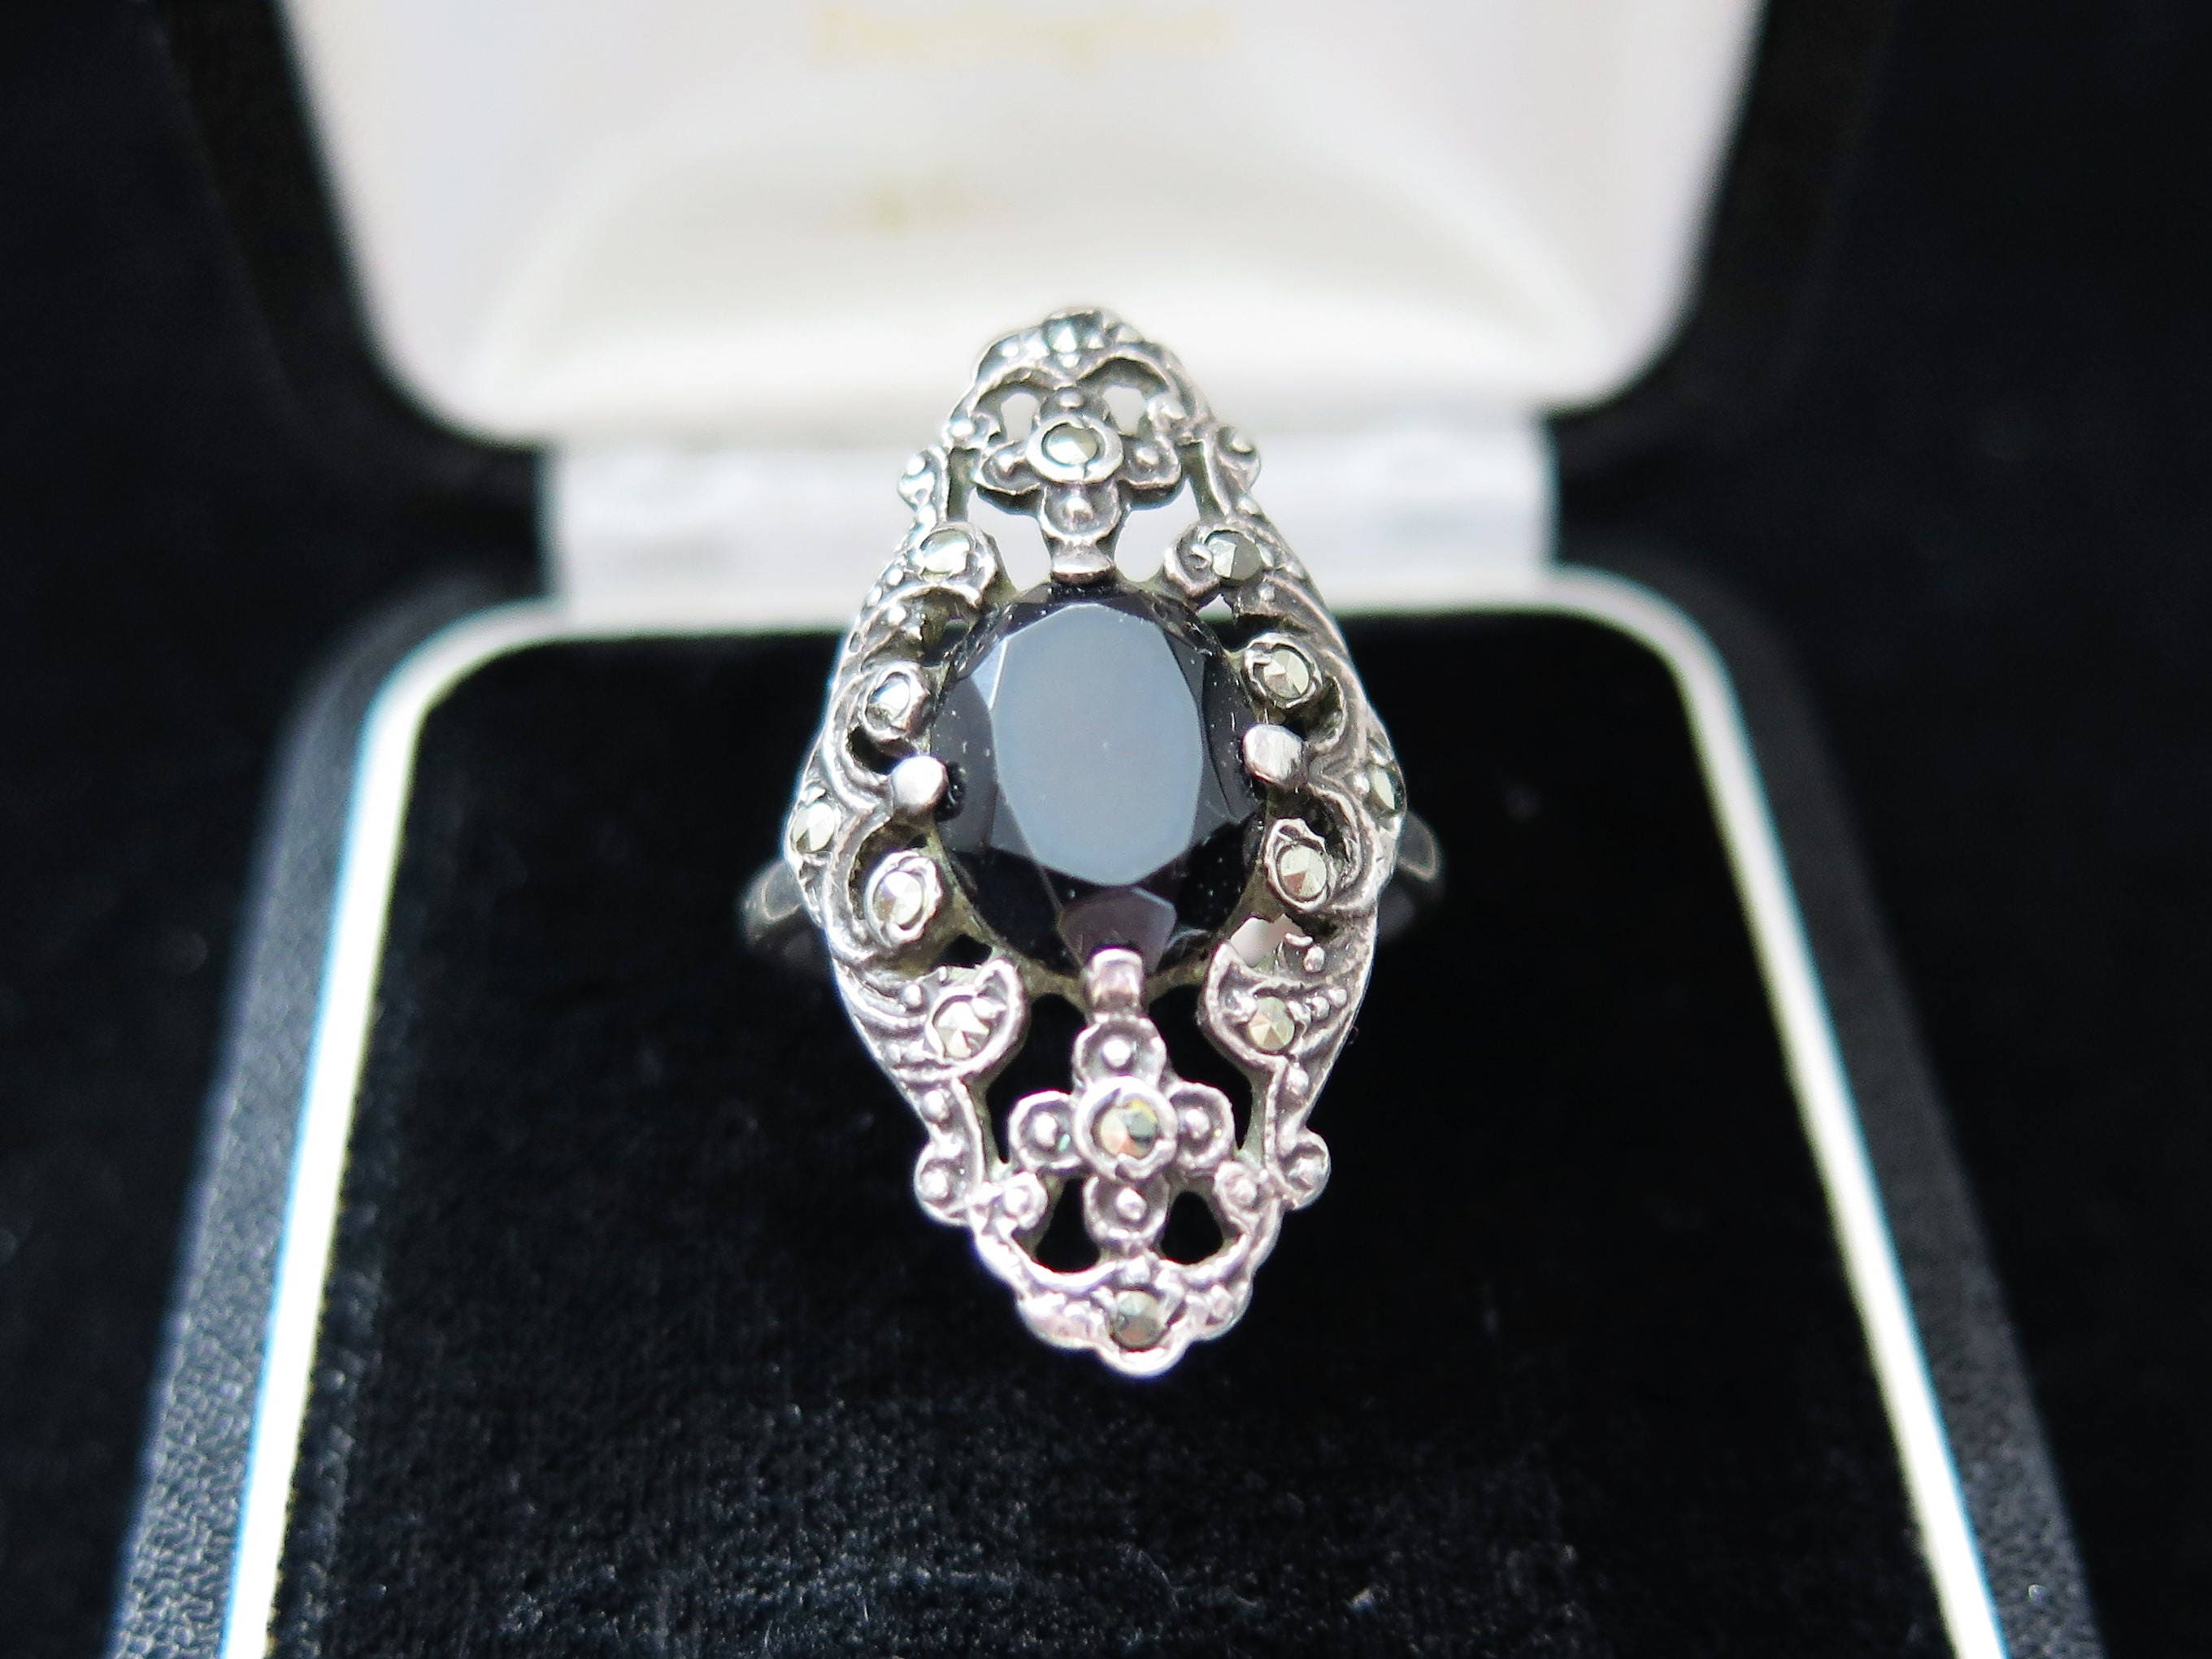 Large Art Deco Ring Statement Ring Sterling Silver With Onyx Marcasite Size P US 7 34